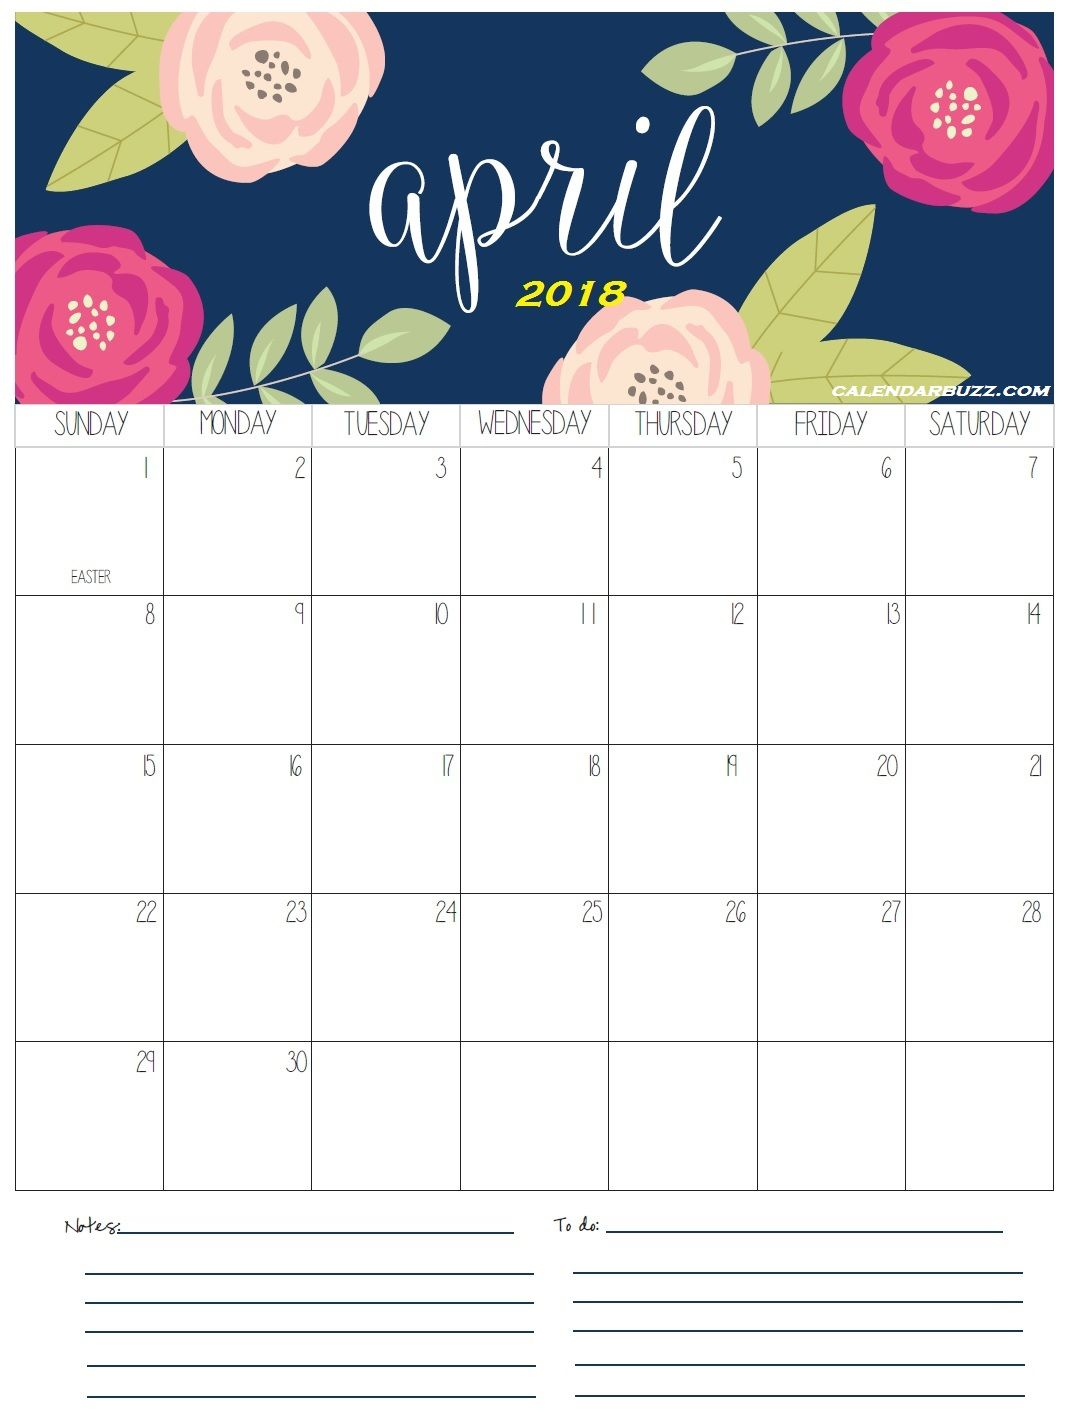 April Calendar Easter : April calendar easter free download aashe